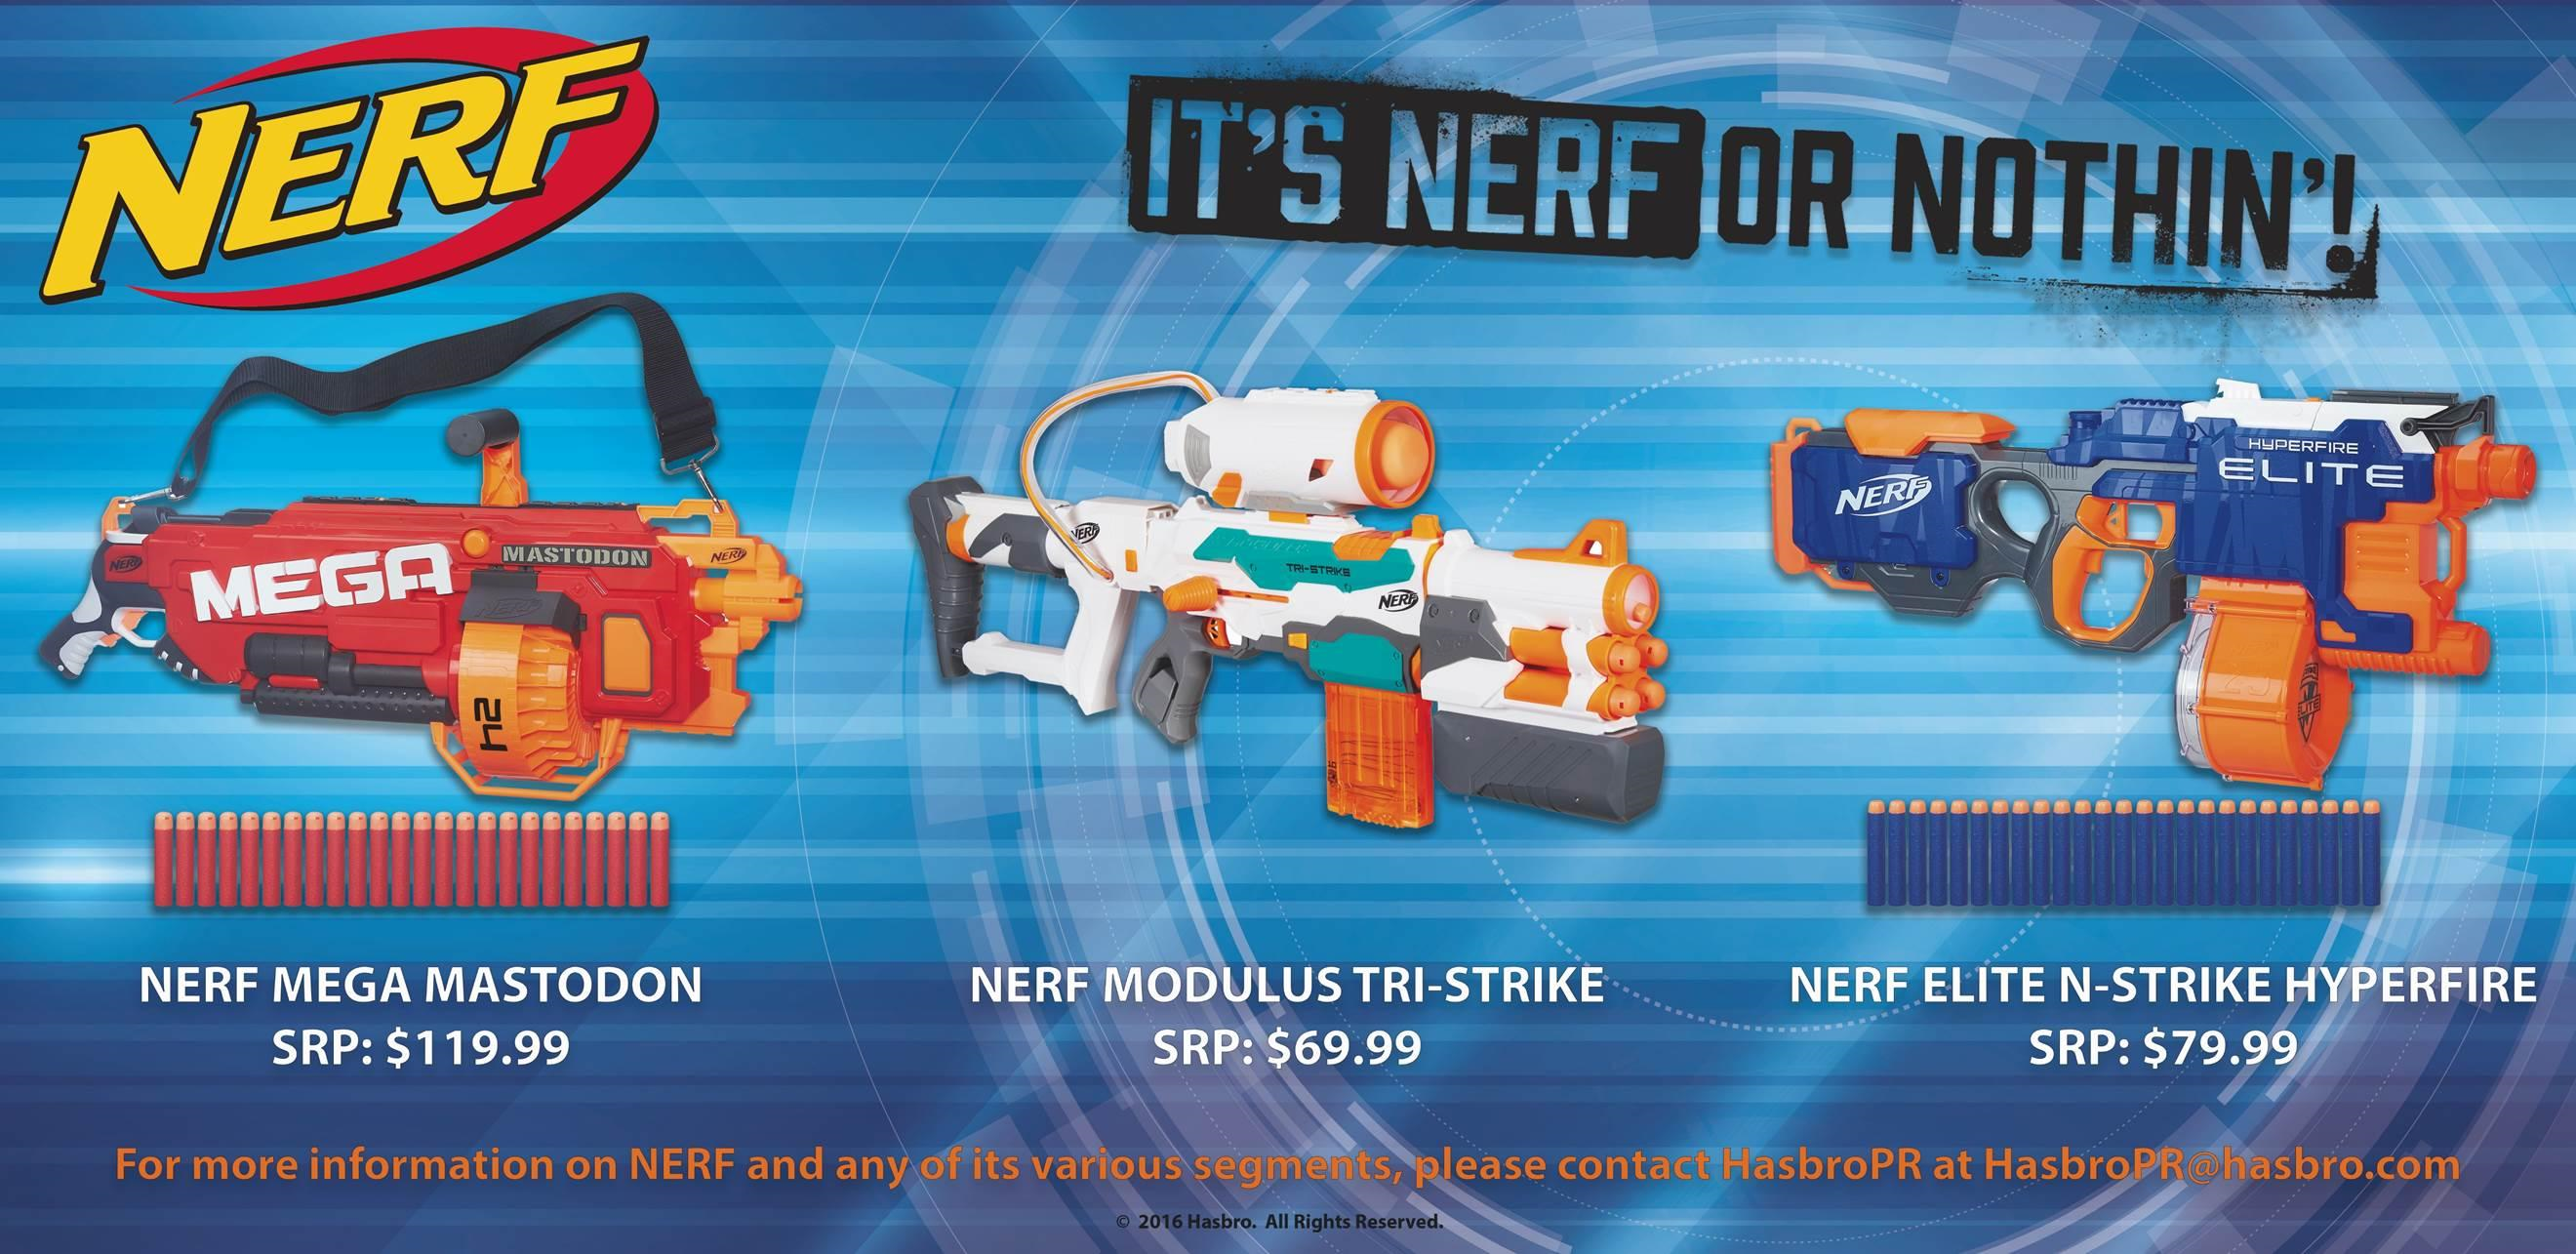 Blasting into fall with nerf giveaway naturally cracked for Nerf motorized rapid fire blasting